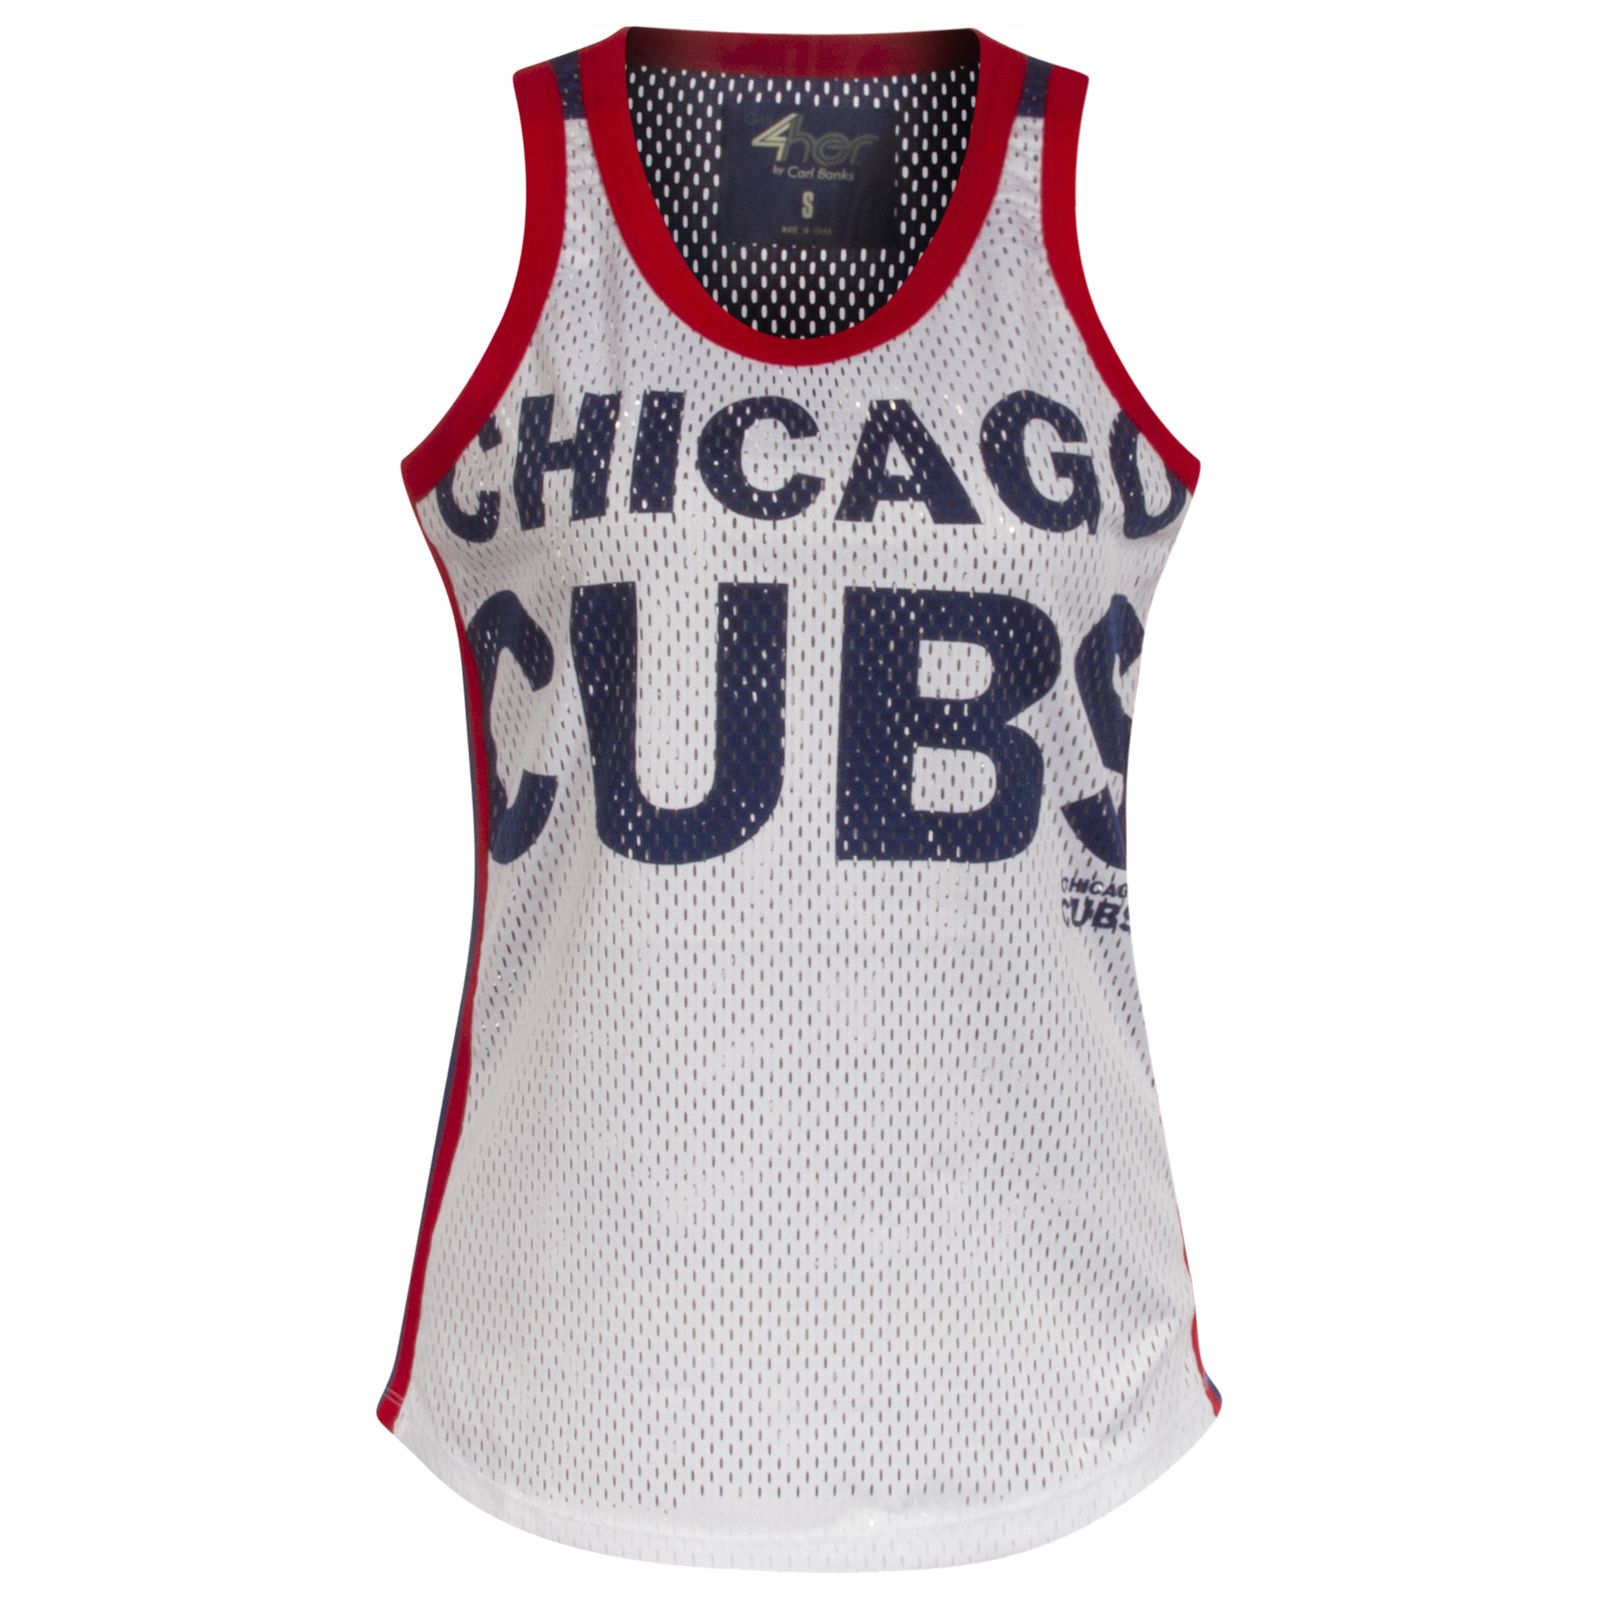 0ebf56b8688 Chicago Cubs White and Royal Text and Bullseye Logo Opening Day Jersey-Style  Tank Top by G-III  Chicago  Cubs  ChicagoCubs